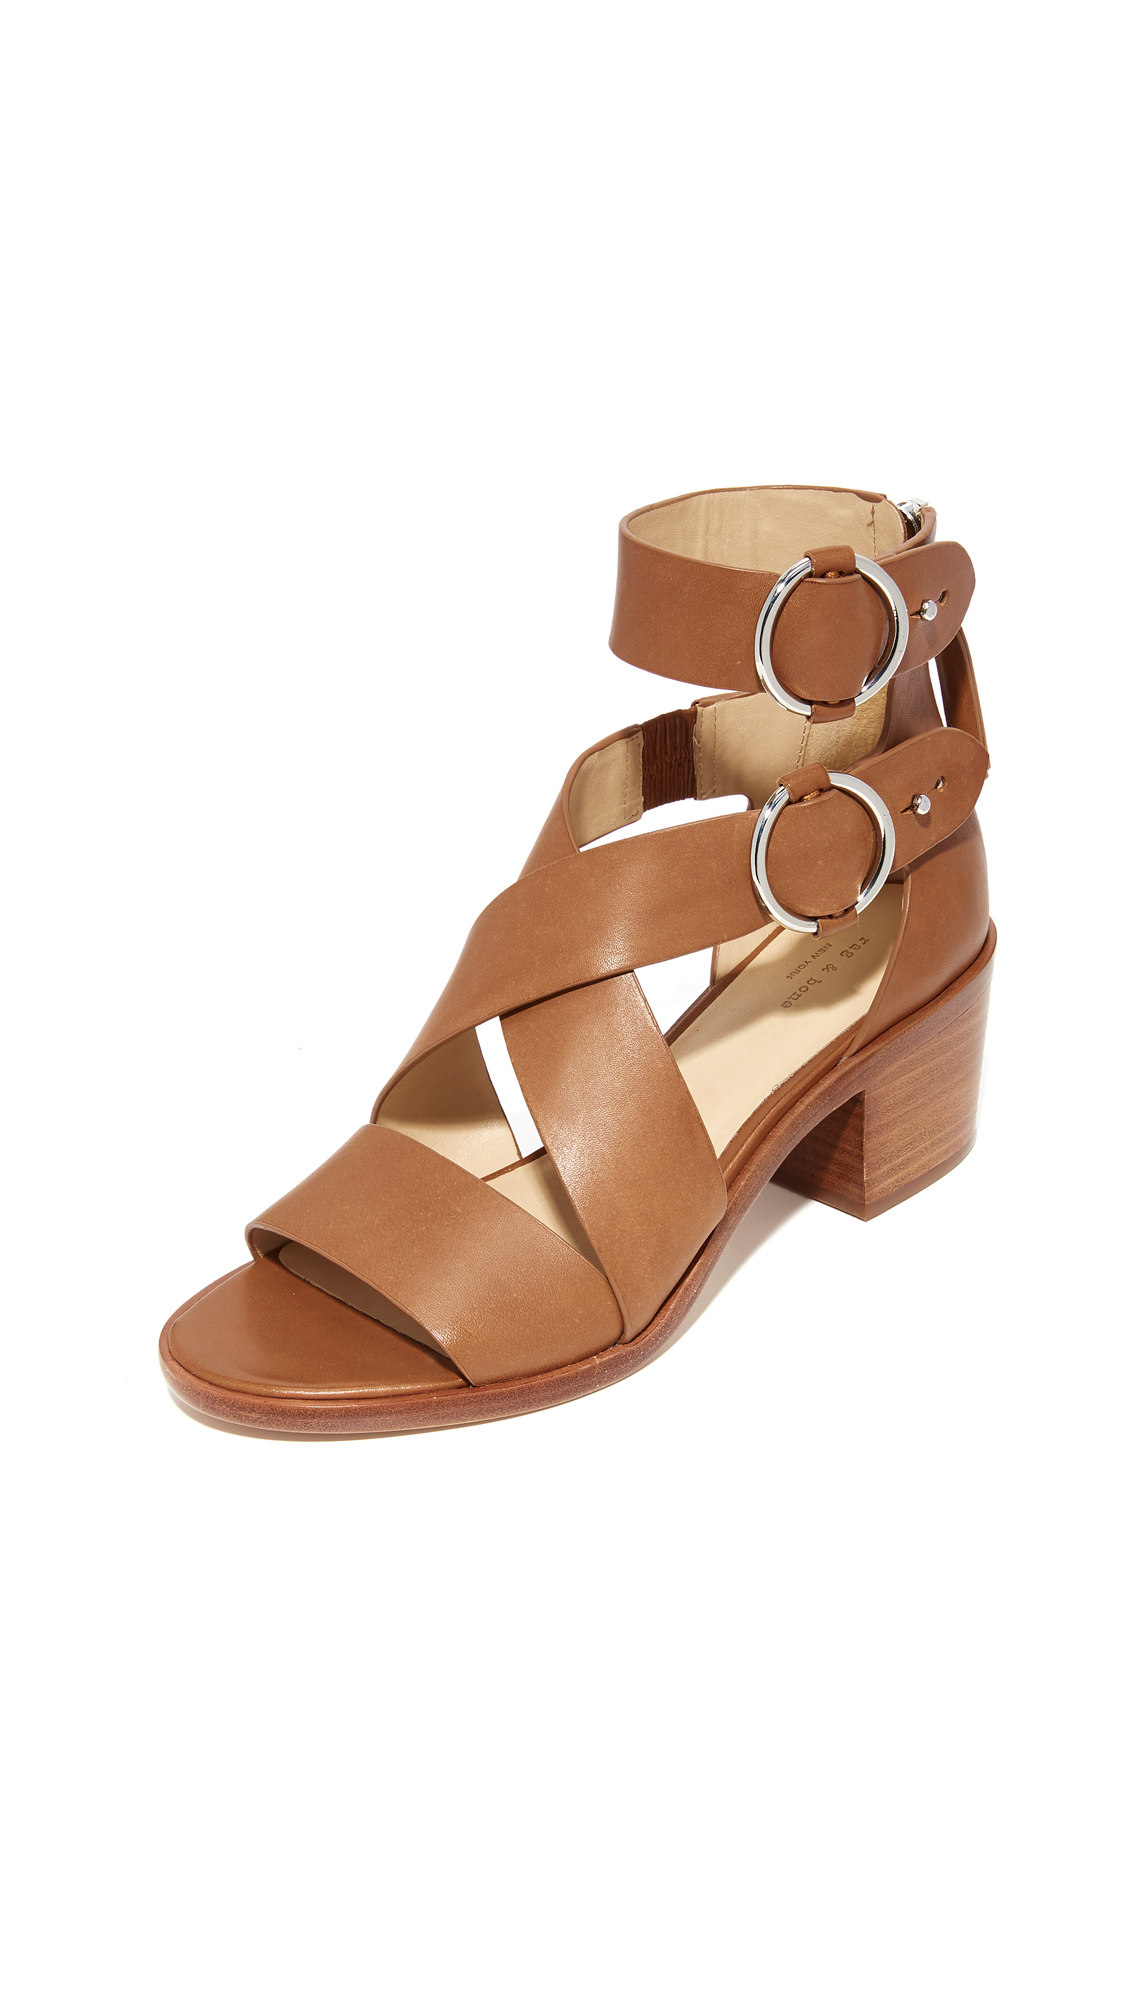 Rag & Bone Mari City Sandals - Tan